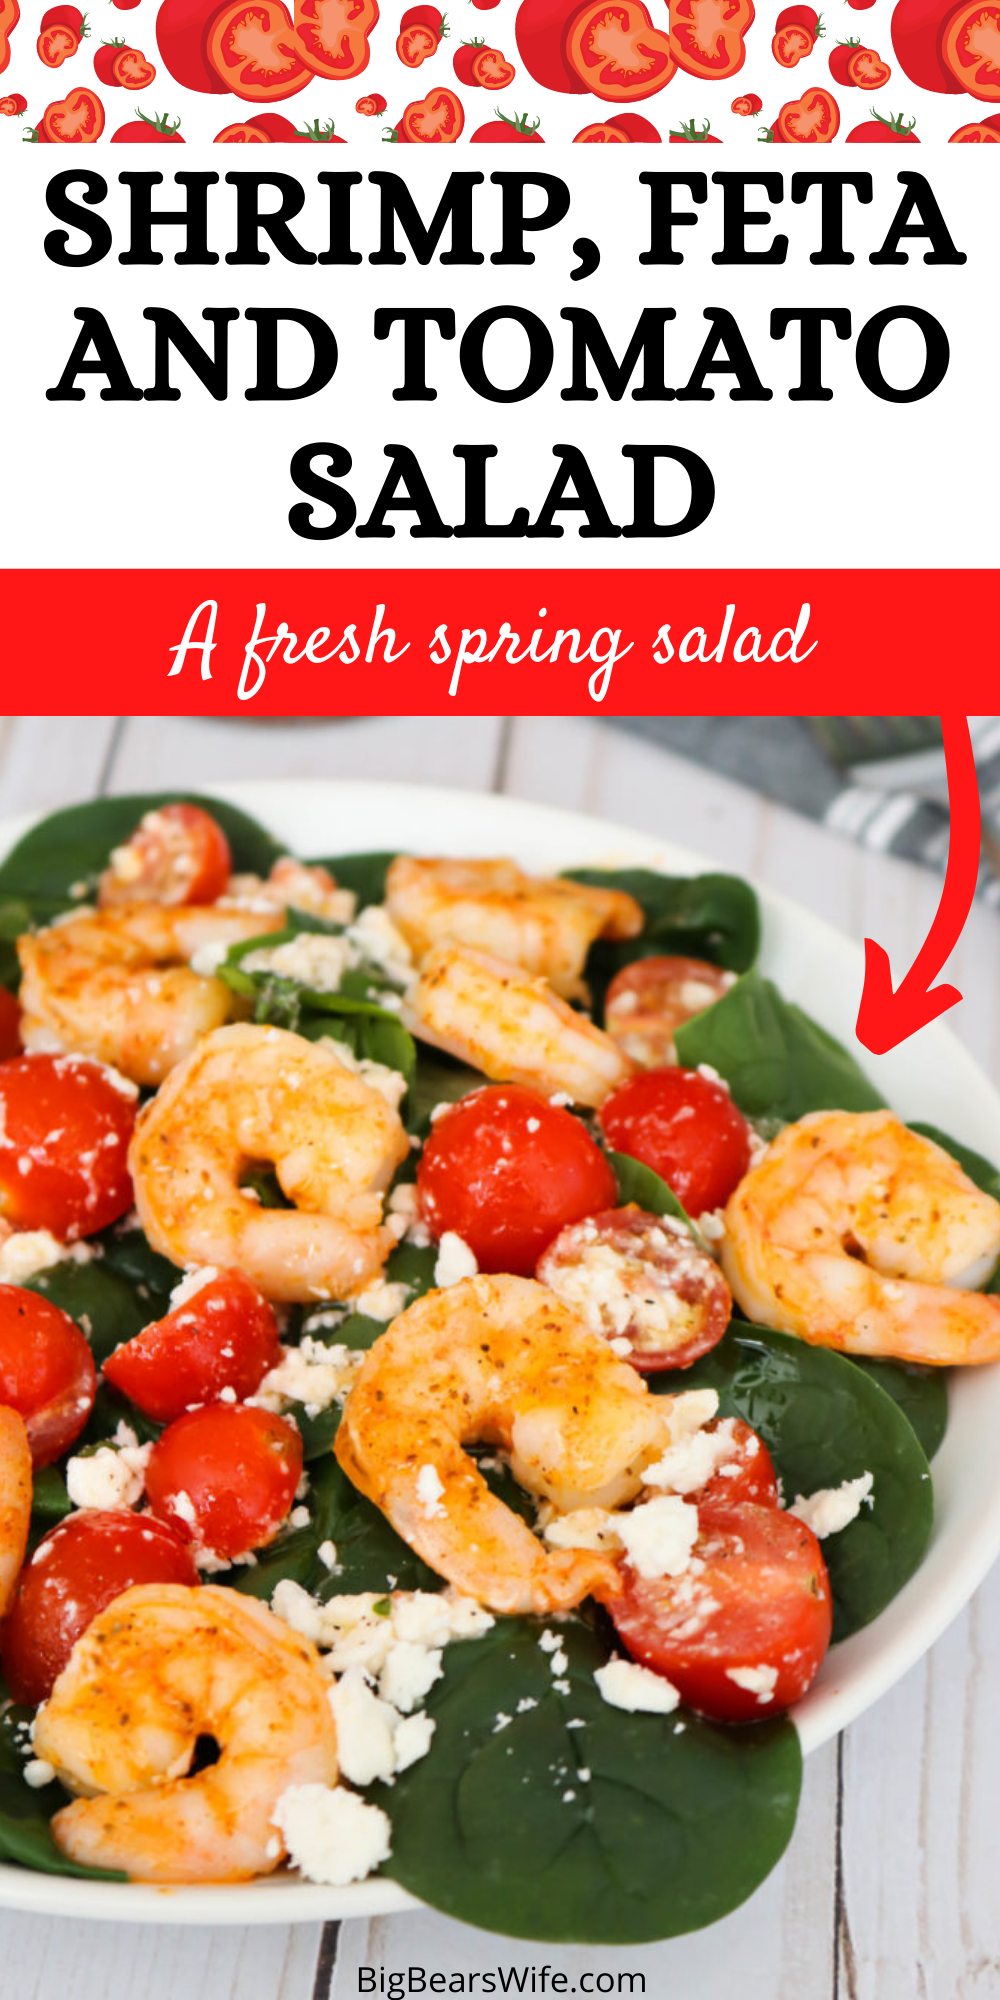 Shrimp Feta and Tomato Salad - Salads don't have to be boring nor do they needs to be loaded down with tons of fatty dressings to be tasty! This Shrimp Feta and Tomato Salad is full of seasoned shrimp, feta cheese, fresh tomatoes and dressed with a wonderful light dressing! via @bigbearswife